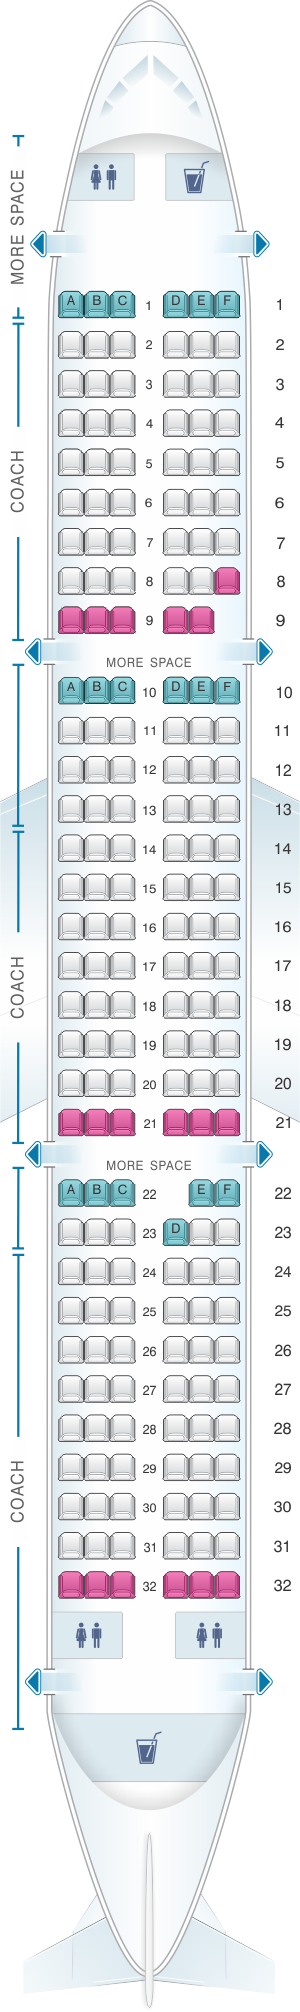 Seat map for JetBlue Airways Airbus A321 Config 1